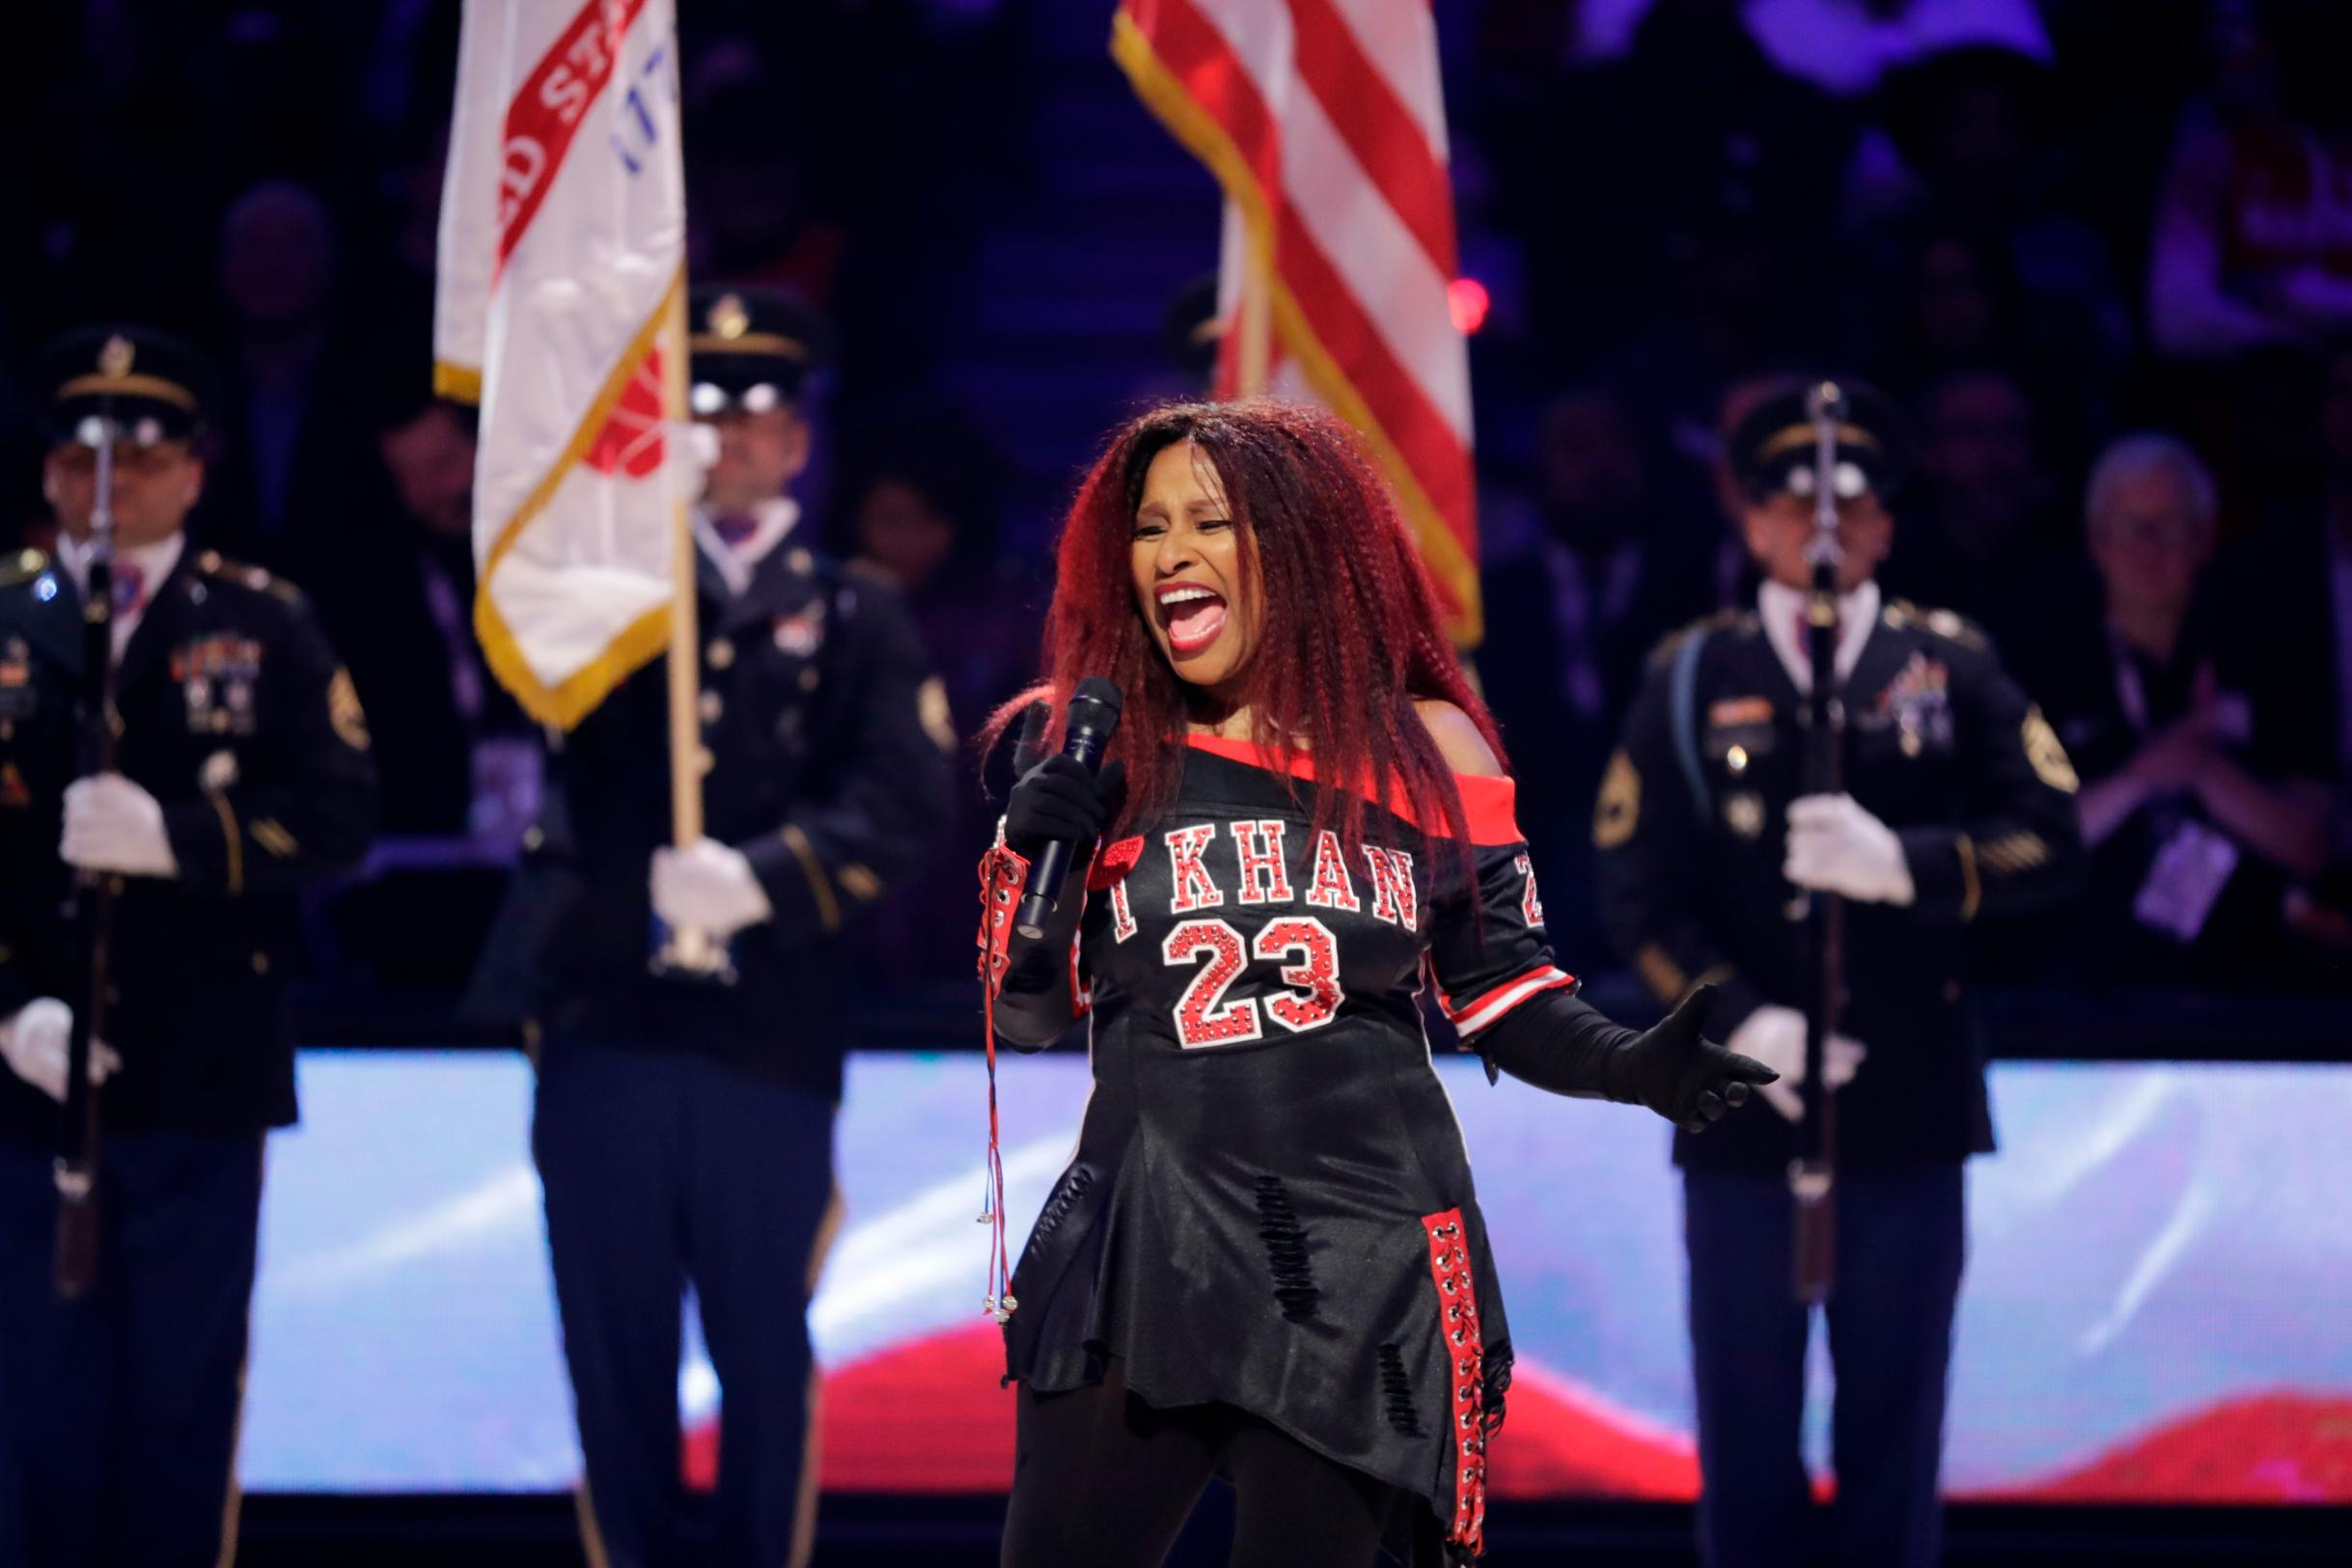 Chaka Khan's All-Star performance roasted